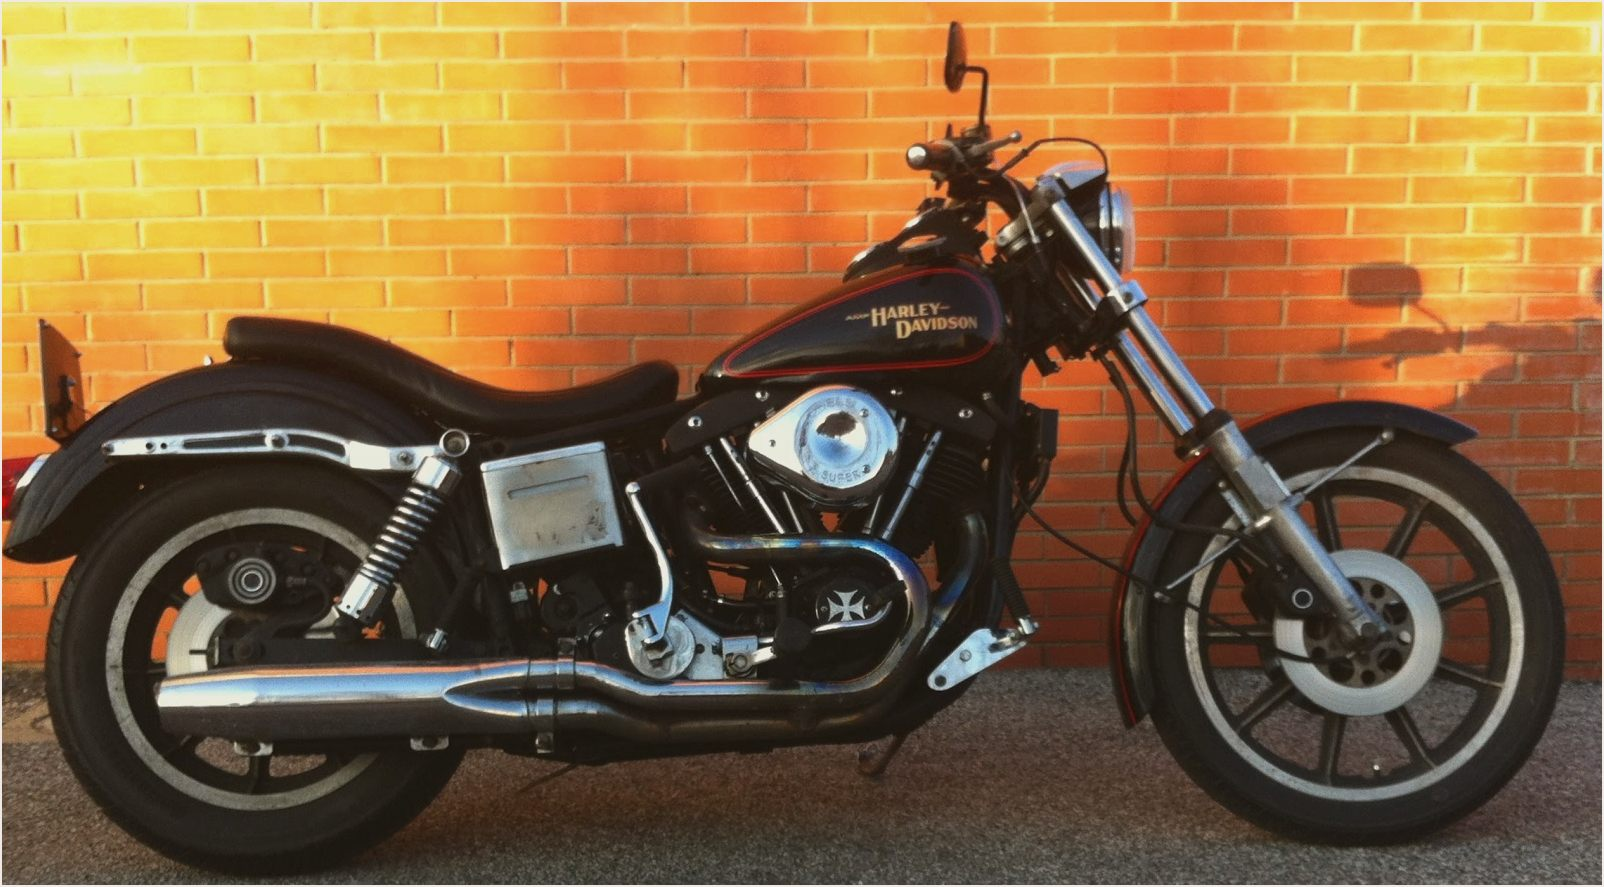 Harley-Davidson FXDL Dyna Low Rider 1999 pics #17187